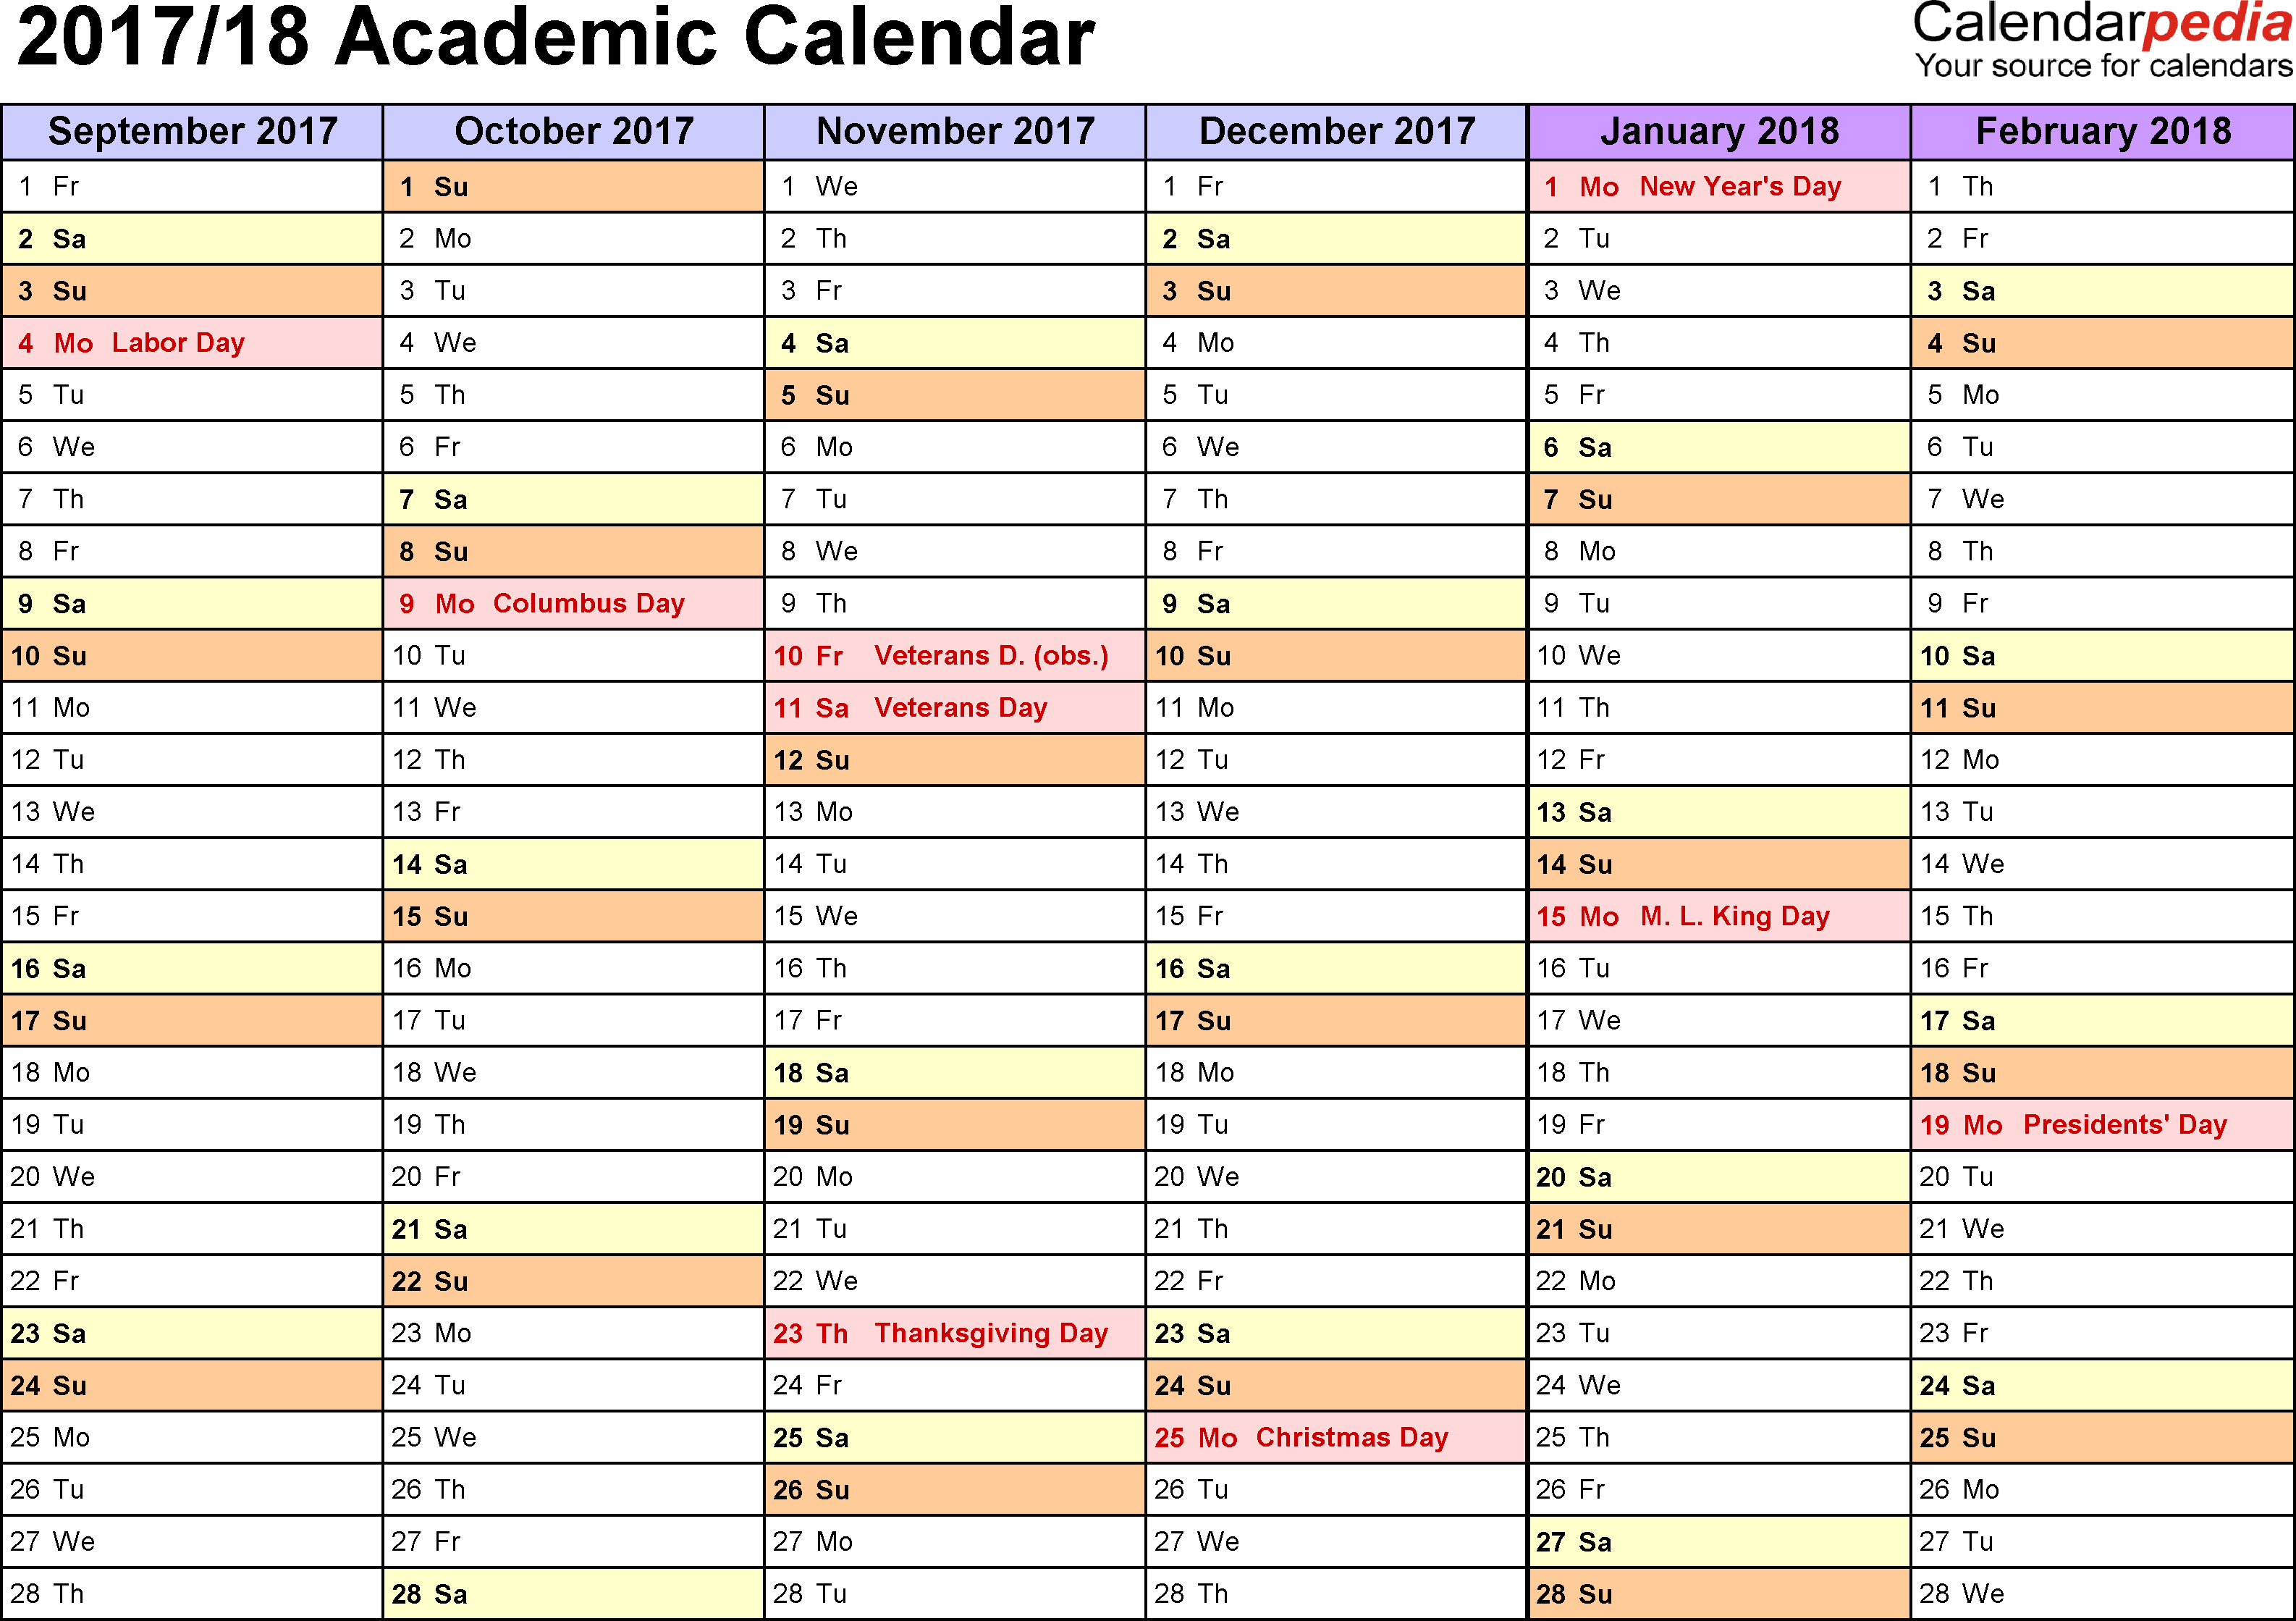 Template 3: Academic Calendar 2017/18 For Word, Landscape Orientation,  Months Horizontally